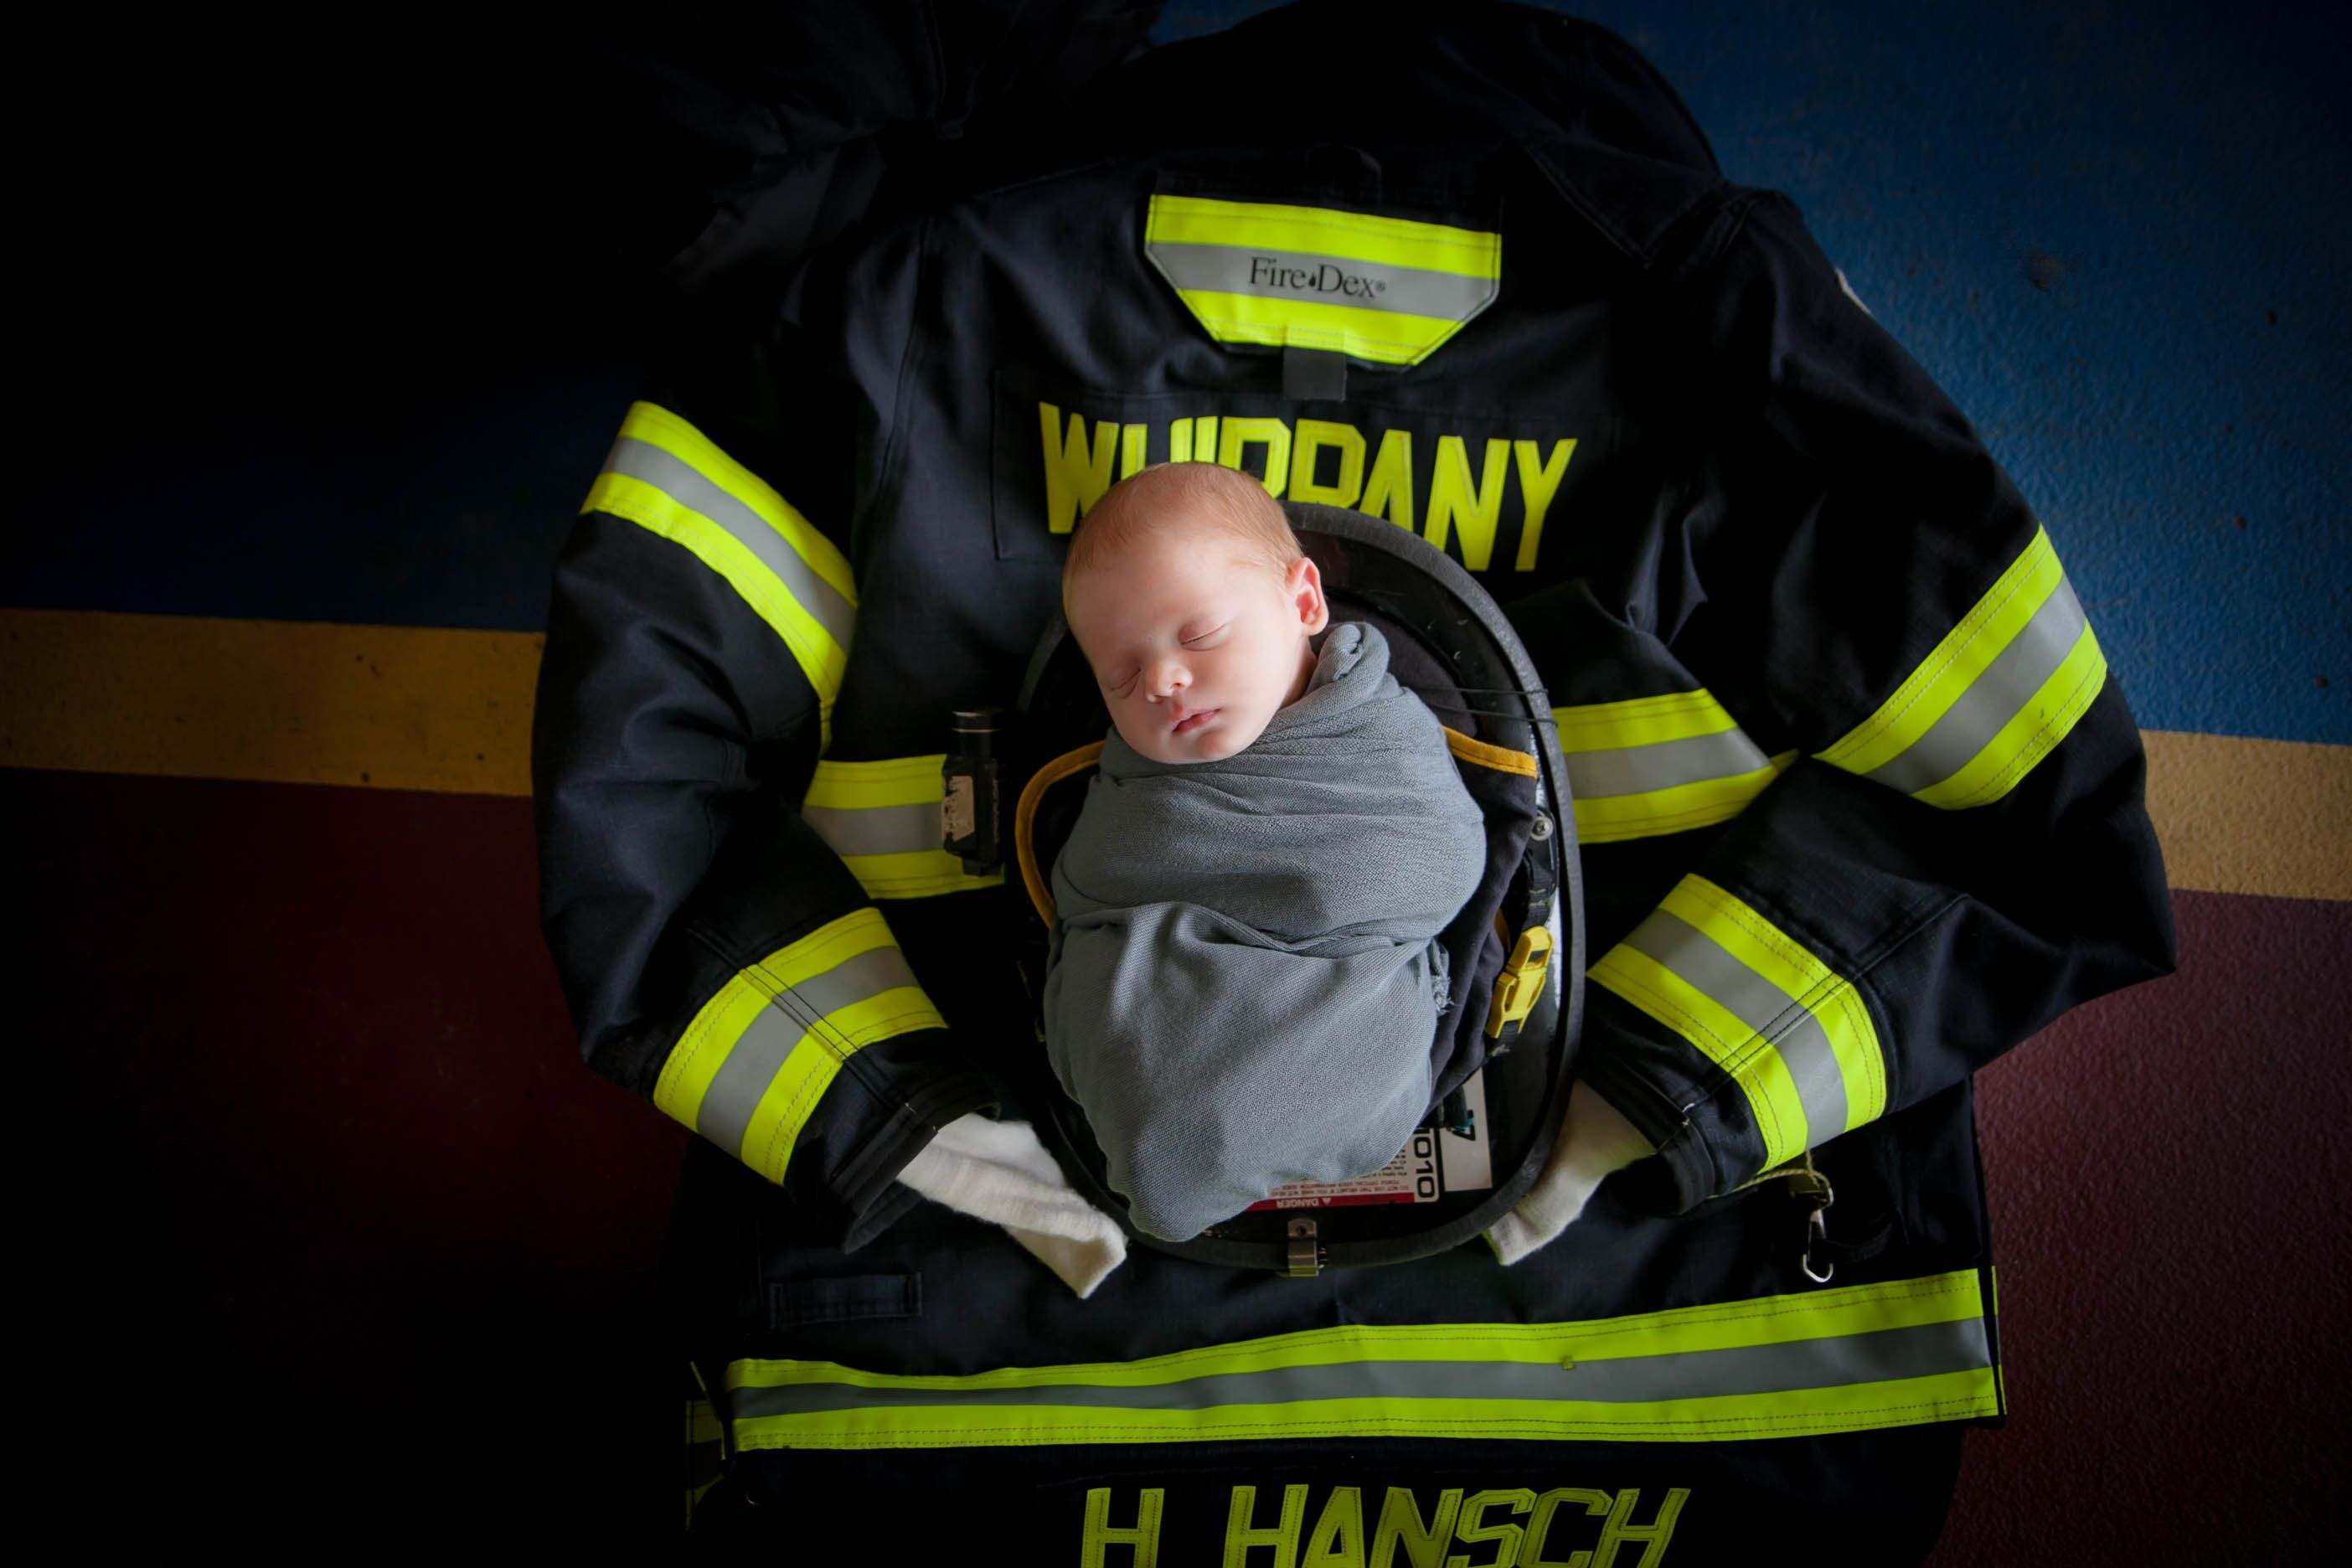 Baby Hudson's newborn photos paid tribute to his firefighter dad.